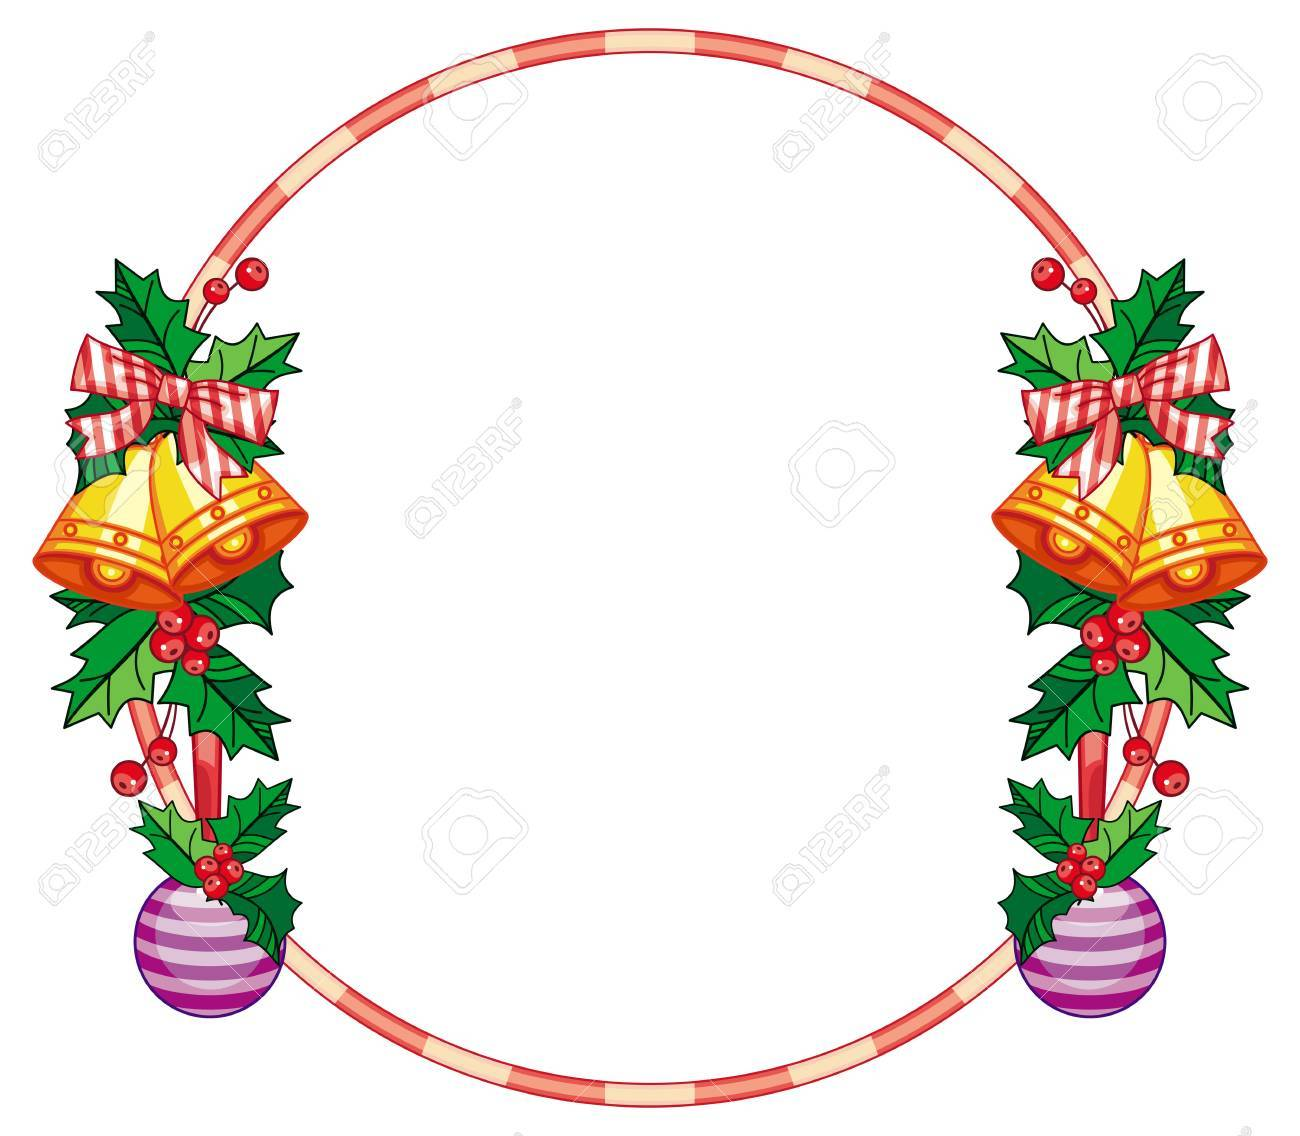 round frame with holly berry and jingle bells copy space christmas rh 123rf com Jingle Bell Rock Clip Art Rustic Jingle Bell Clip Art